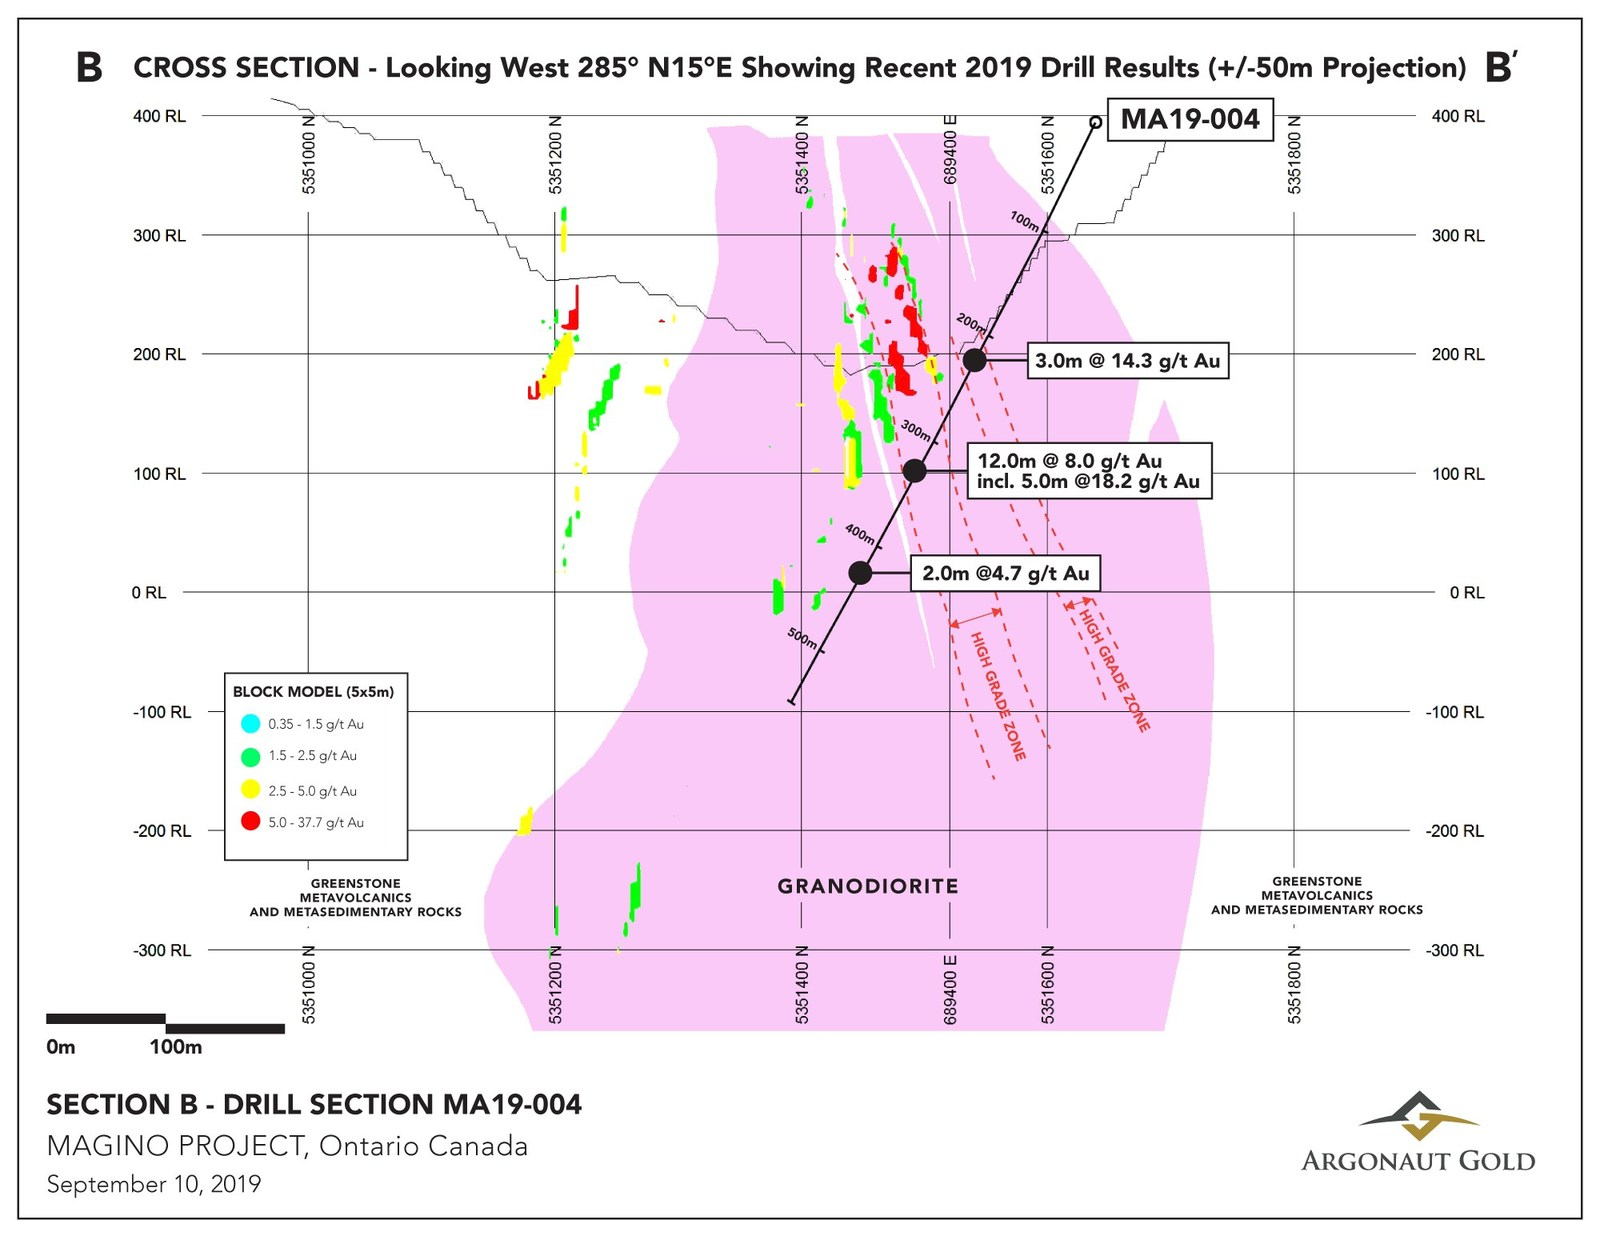 Cross Section B is a section though high grade zones looking west showing highlighted intercepts from drillhole MA19-004.